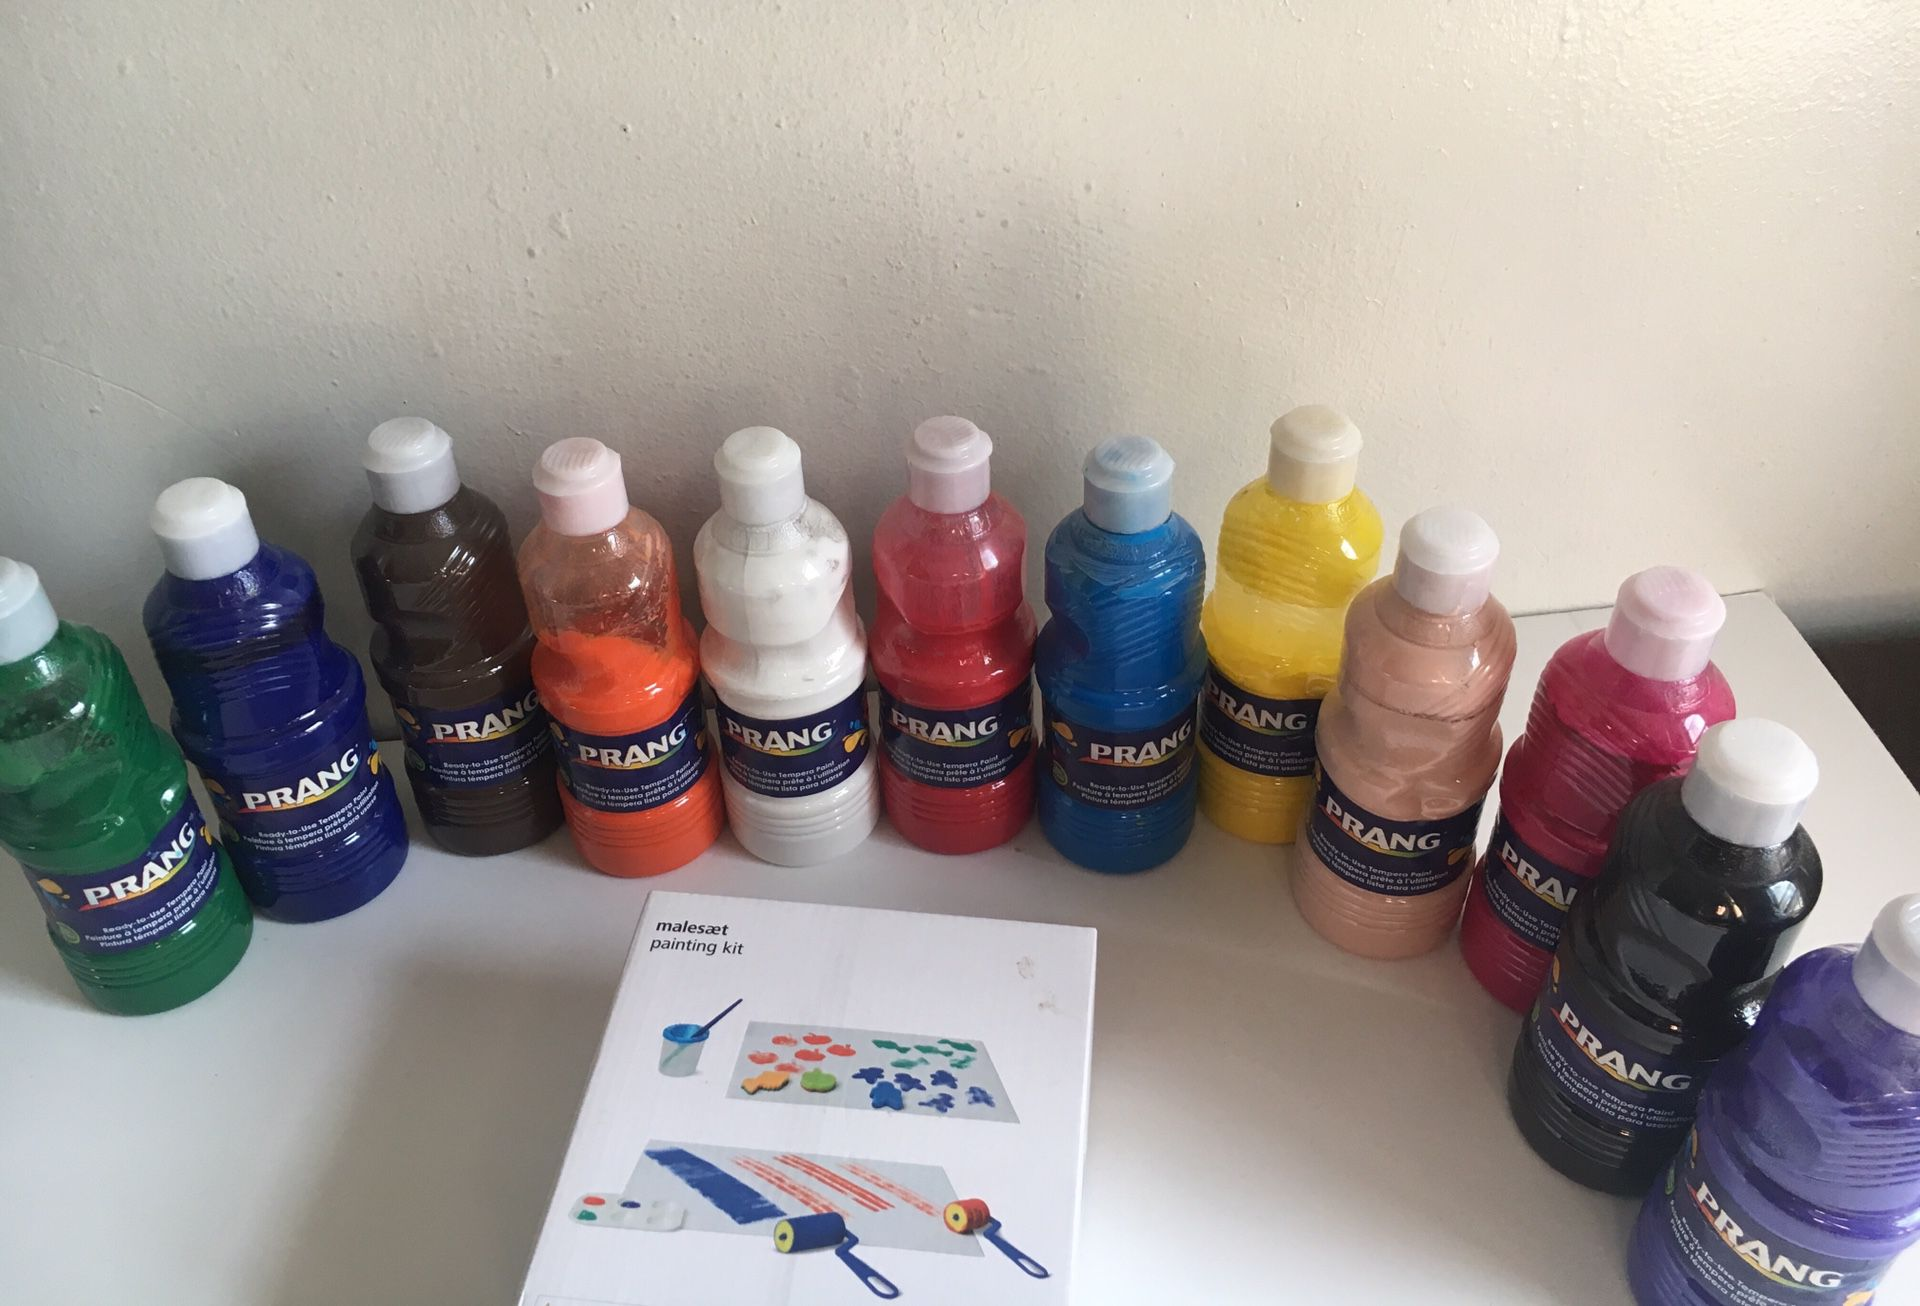 Prang non toxic paint and roller for toddlers/ kids